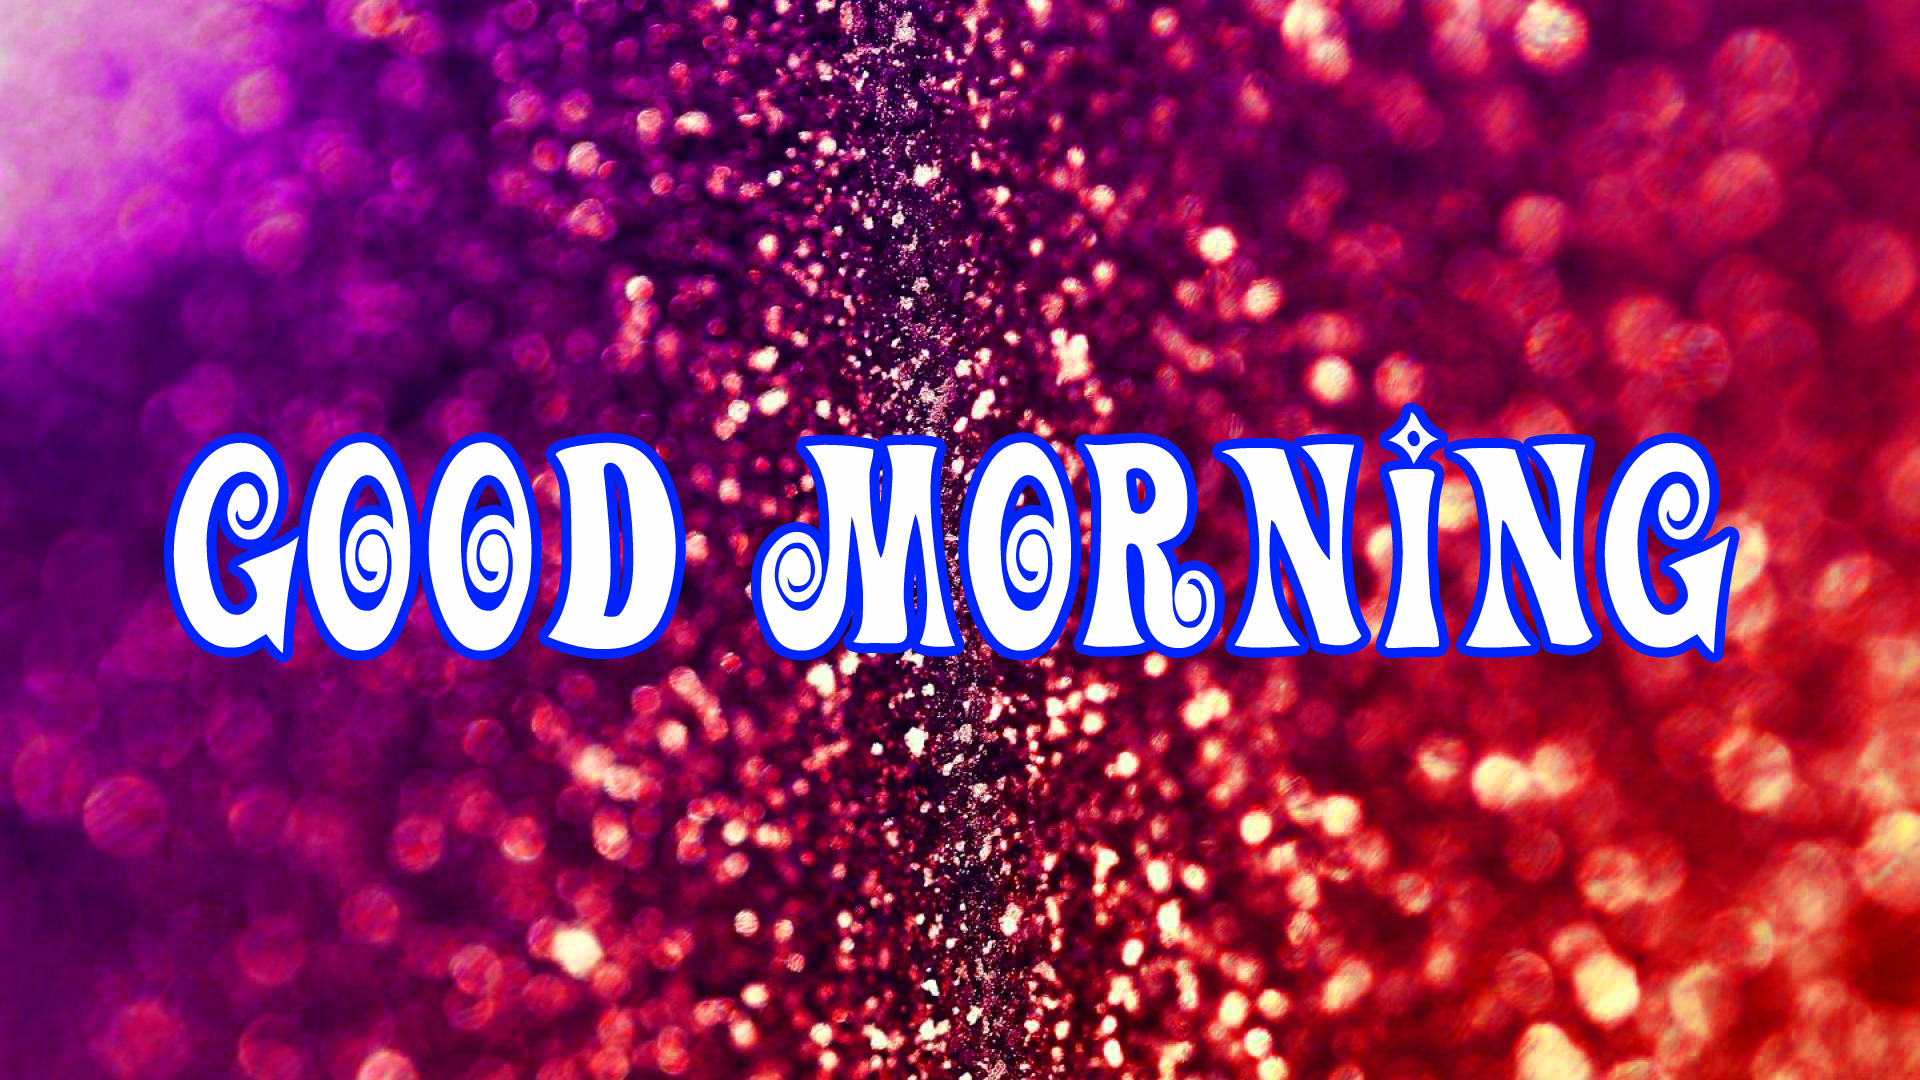 GOOD MORNING GLITTERS IMAGES PHOTO PICS DOWNLOAD